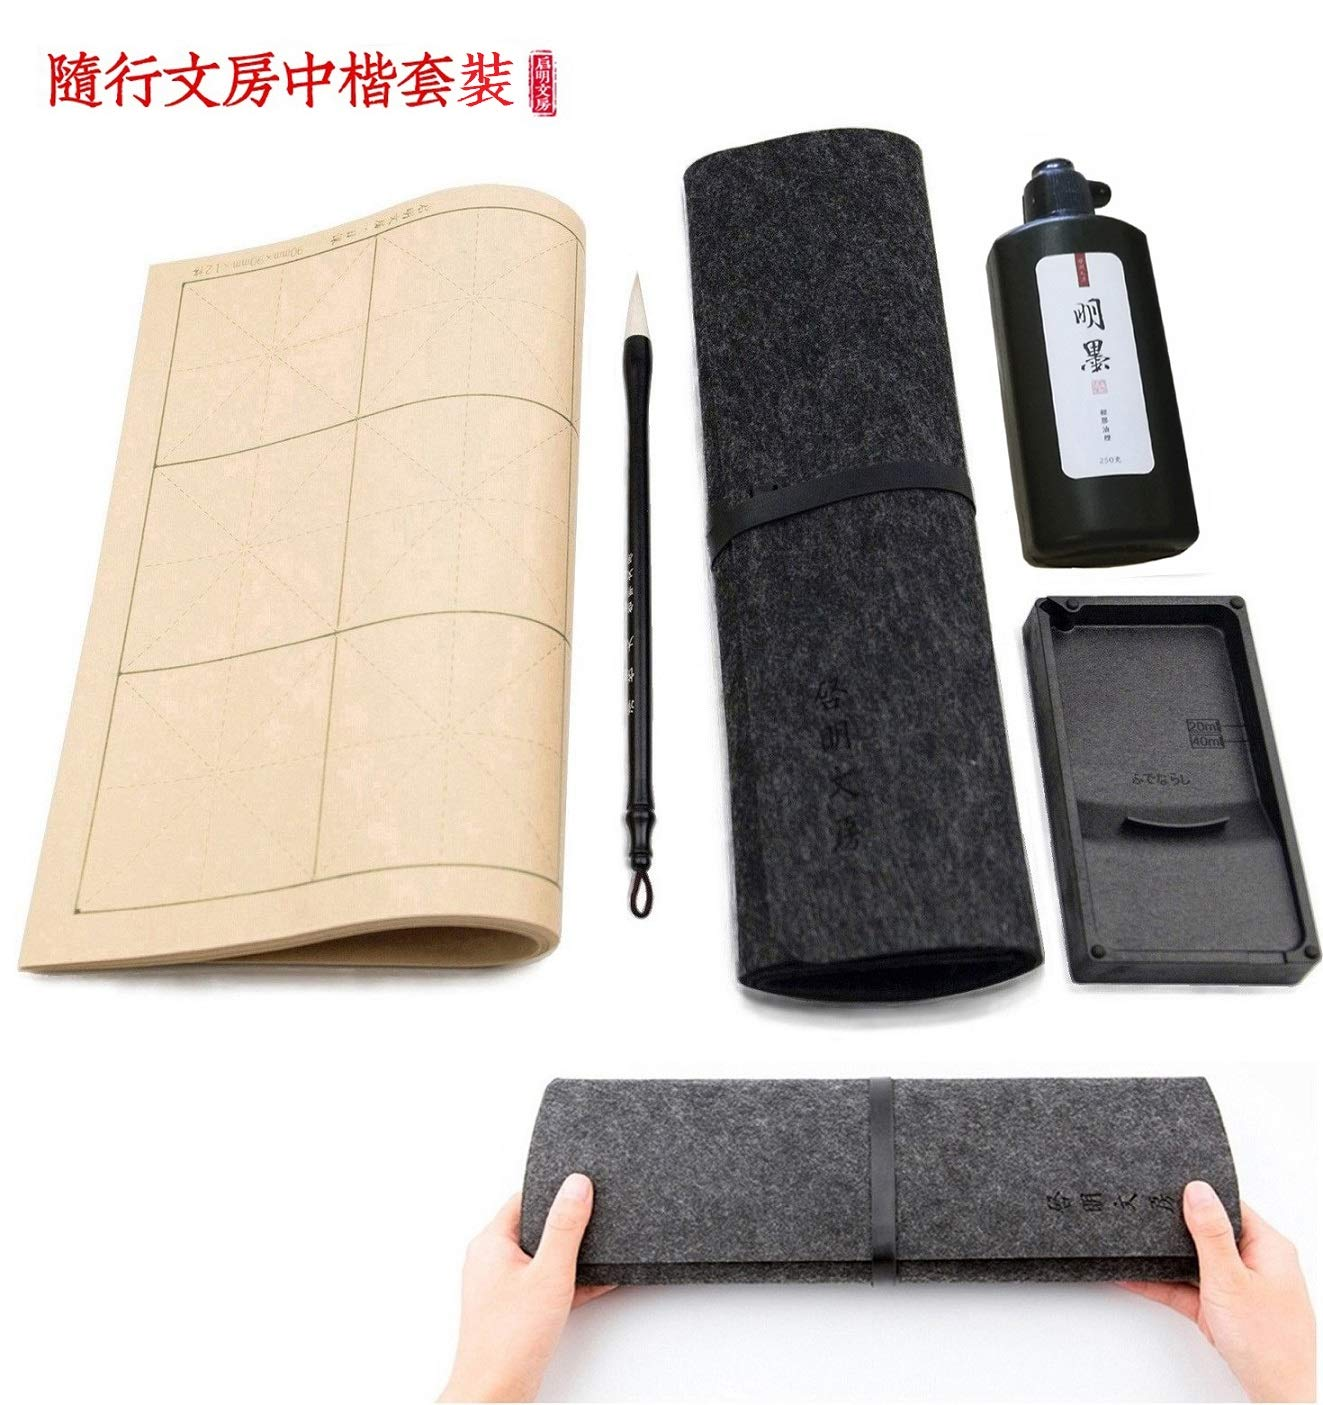 Qiming Wenfang Chinese Brush set Sumi Set  Chinese Calligraphy Brush, Ink, Writing Paper, Inkstone Set with portable Roll-up Felt Mat (5pcs Set) by QiMing WenFang